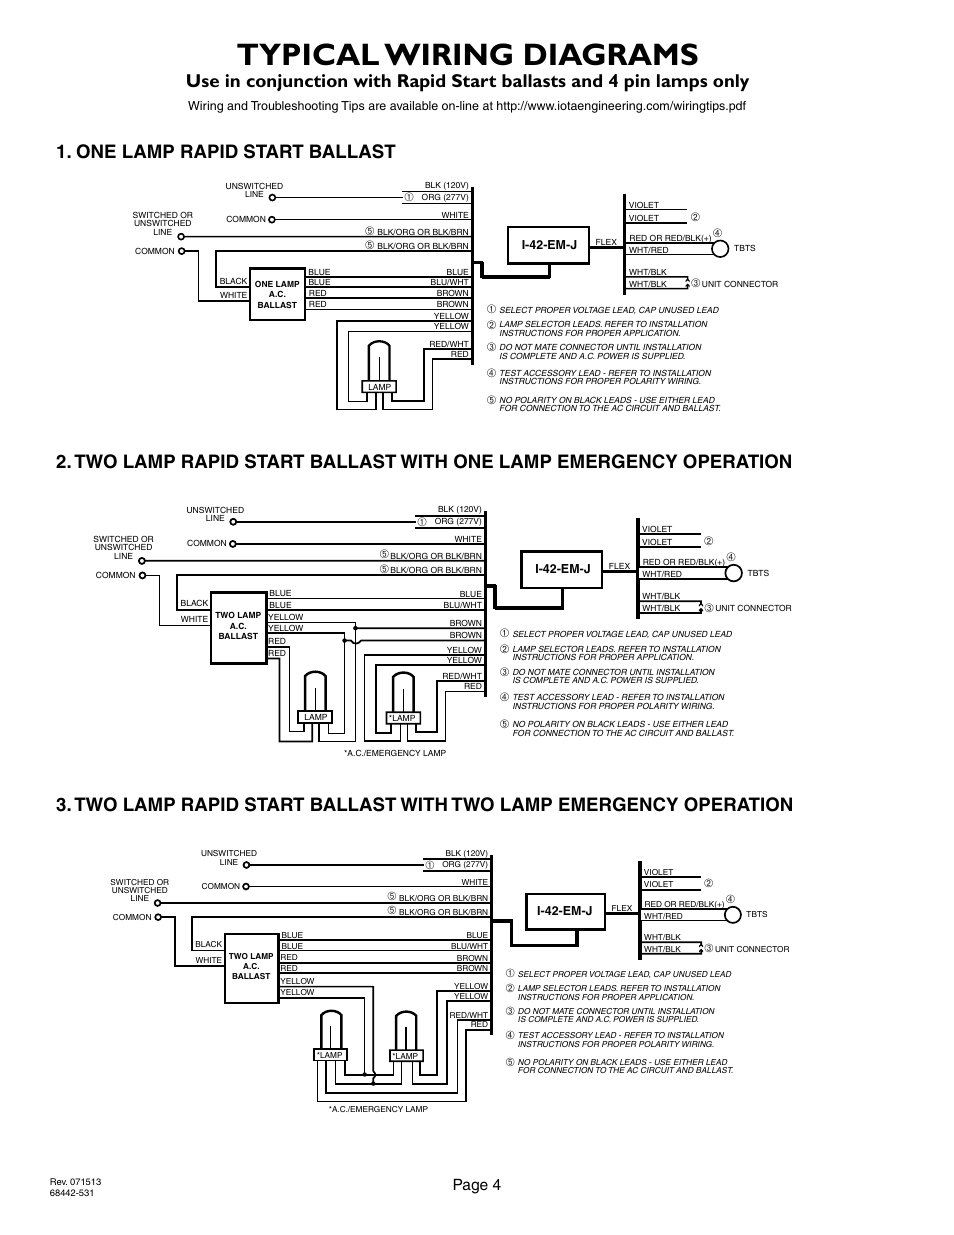 Magnetic F96t12 Ballast Wiring Diagram Advance T12 Toyota Engine P062dno1 Vdj200r Contemporary Ho Composition Simple Enchanting